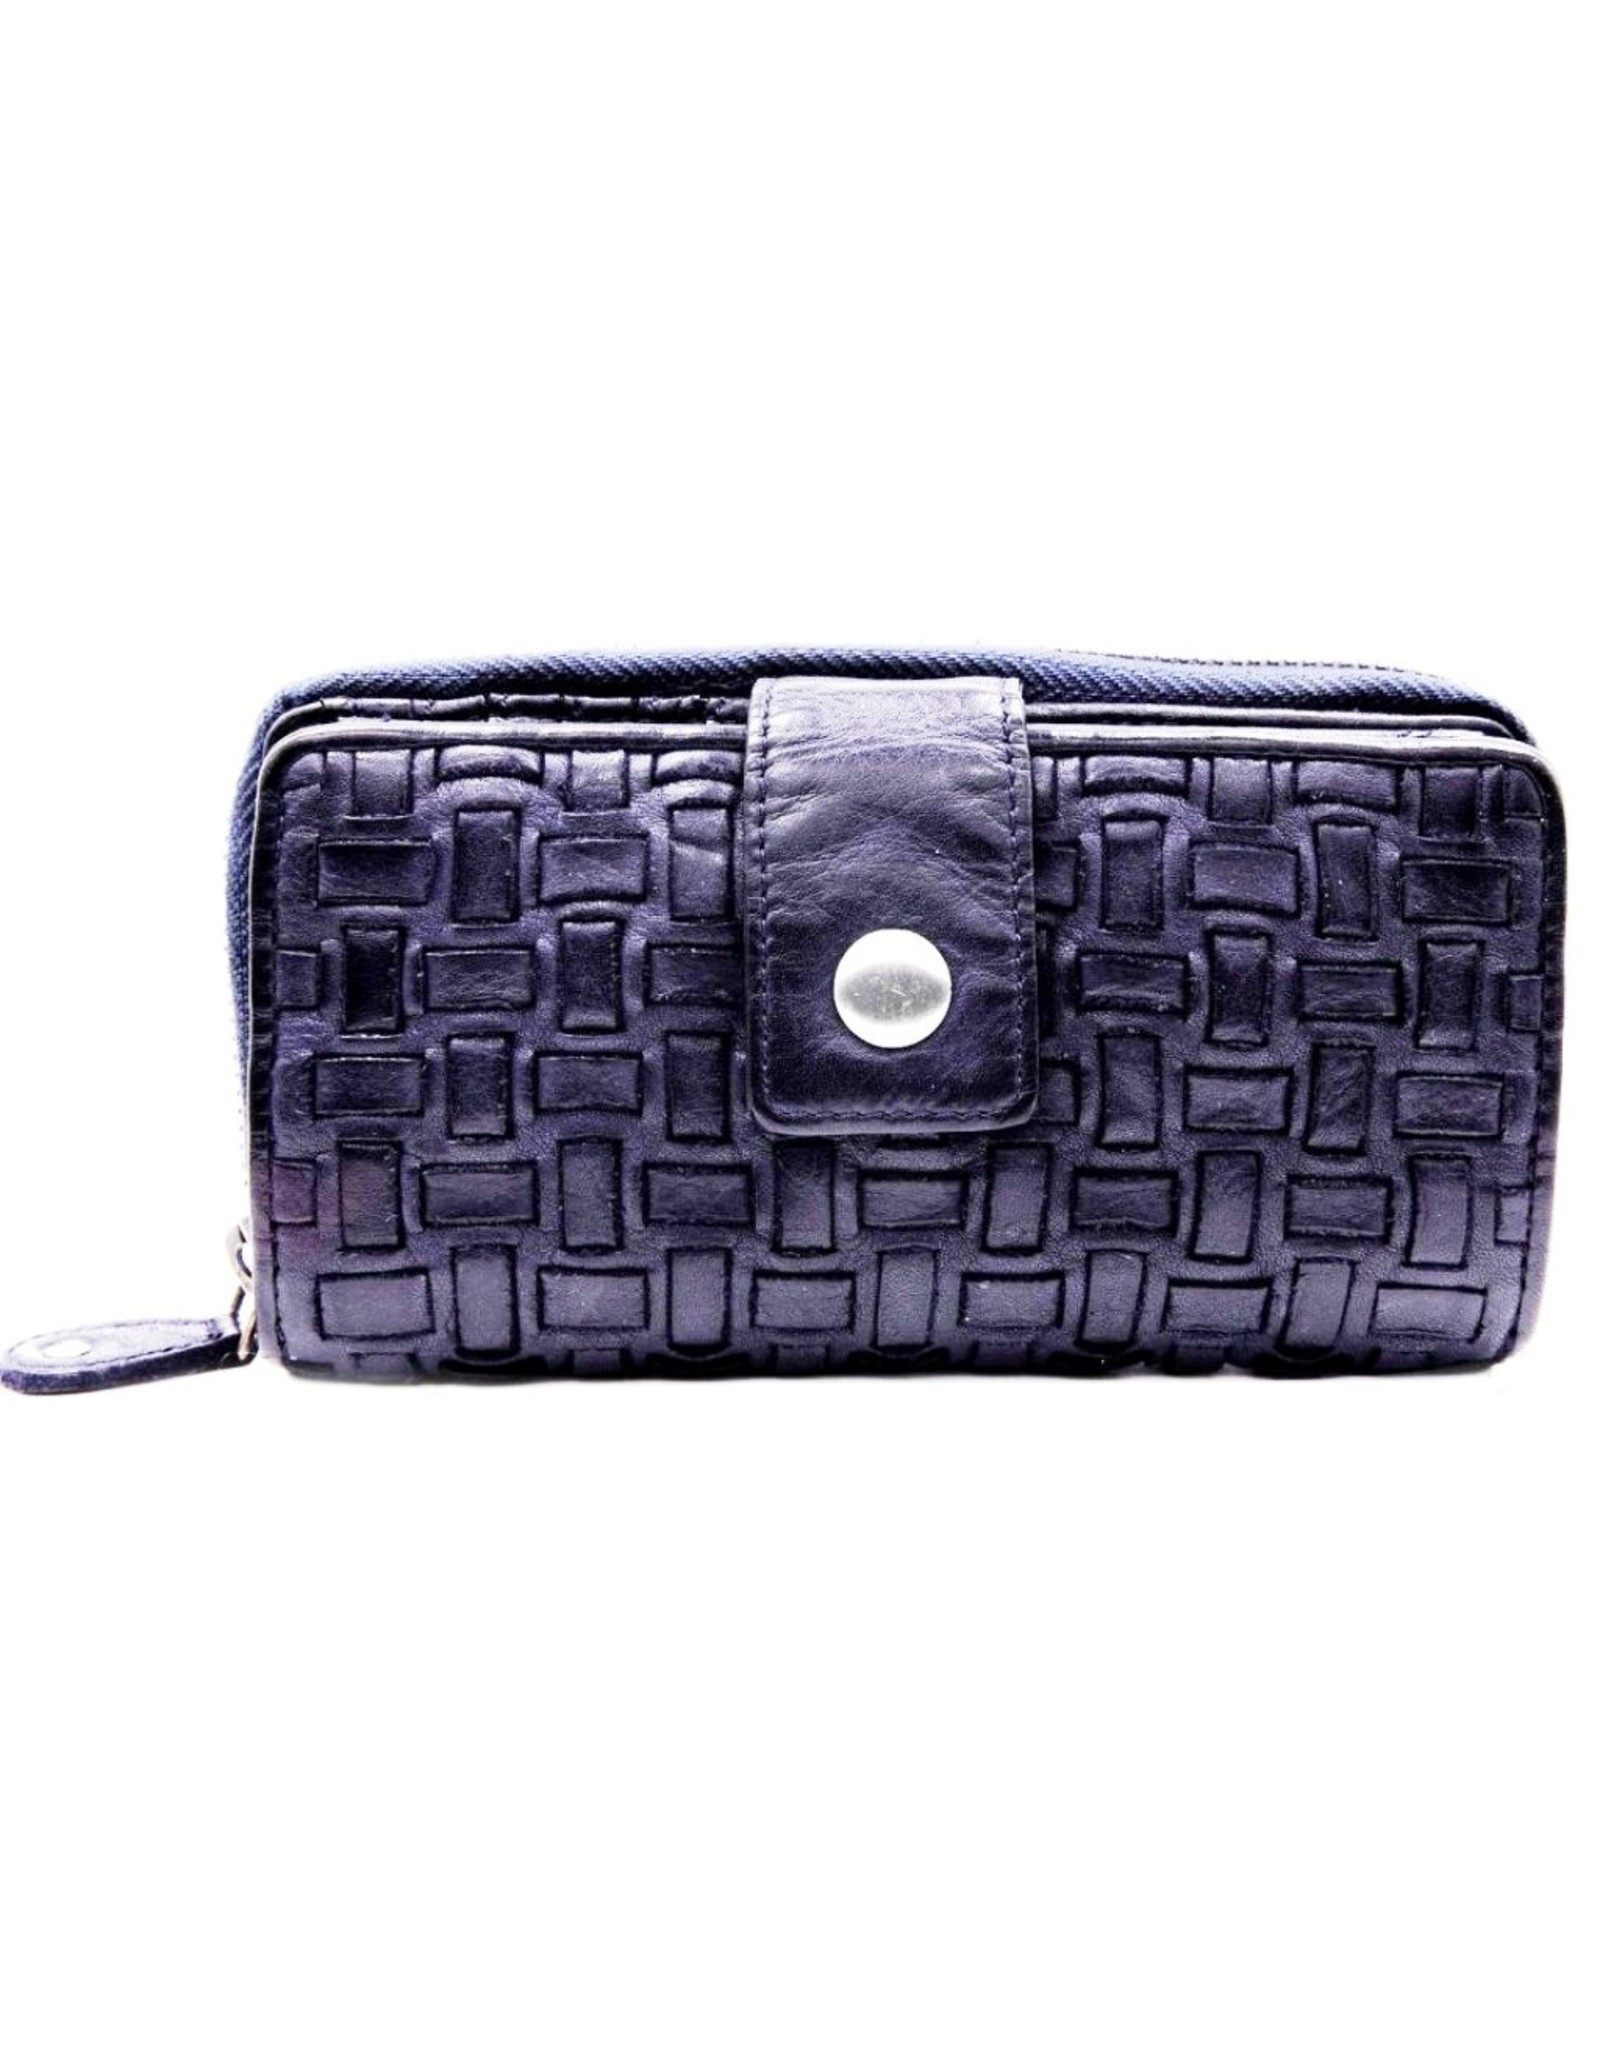 Bellicci Leather Wallets - Leather wallet braided washed leather Belliicci (blue)